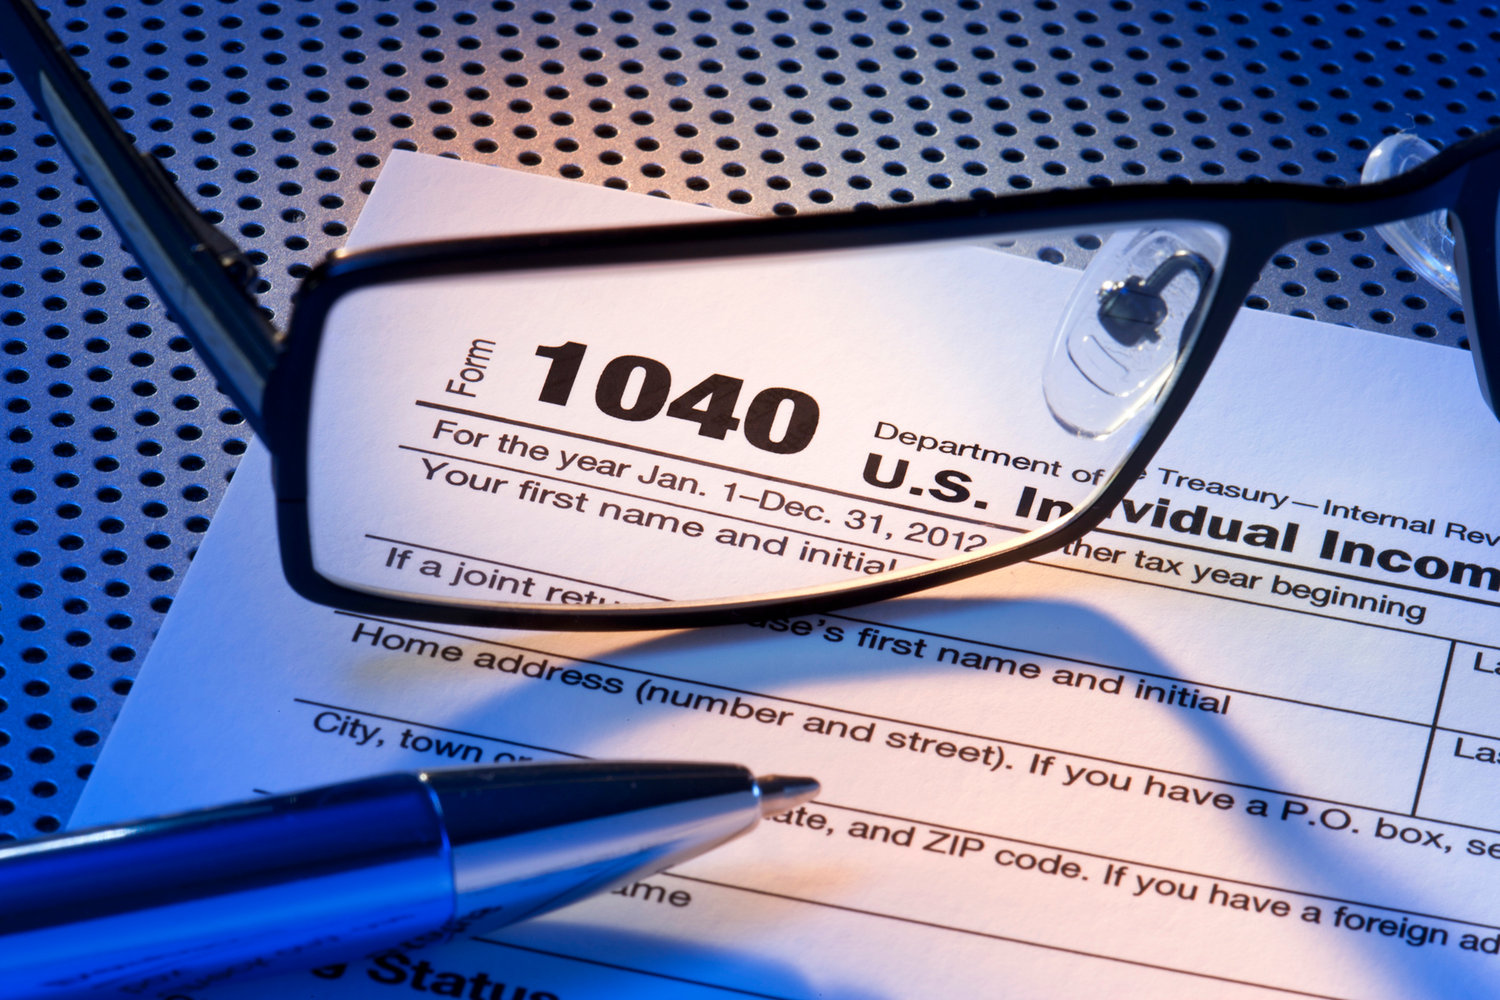 The deadline for filing tax returns with the IRS is Monday, April 15.